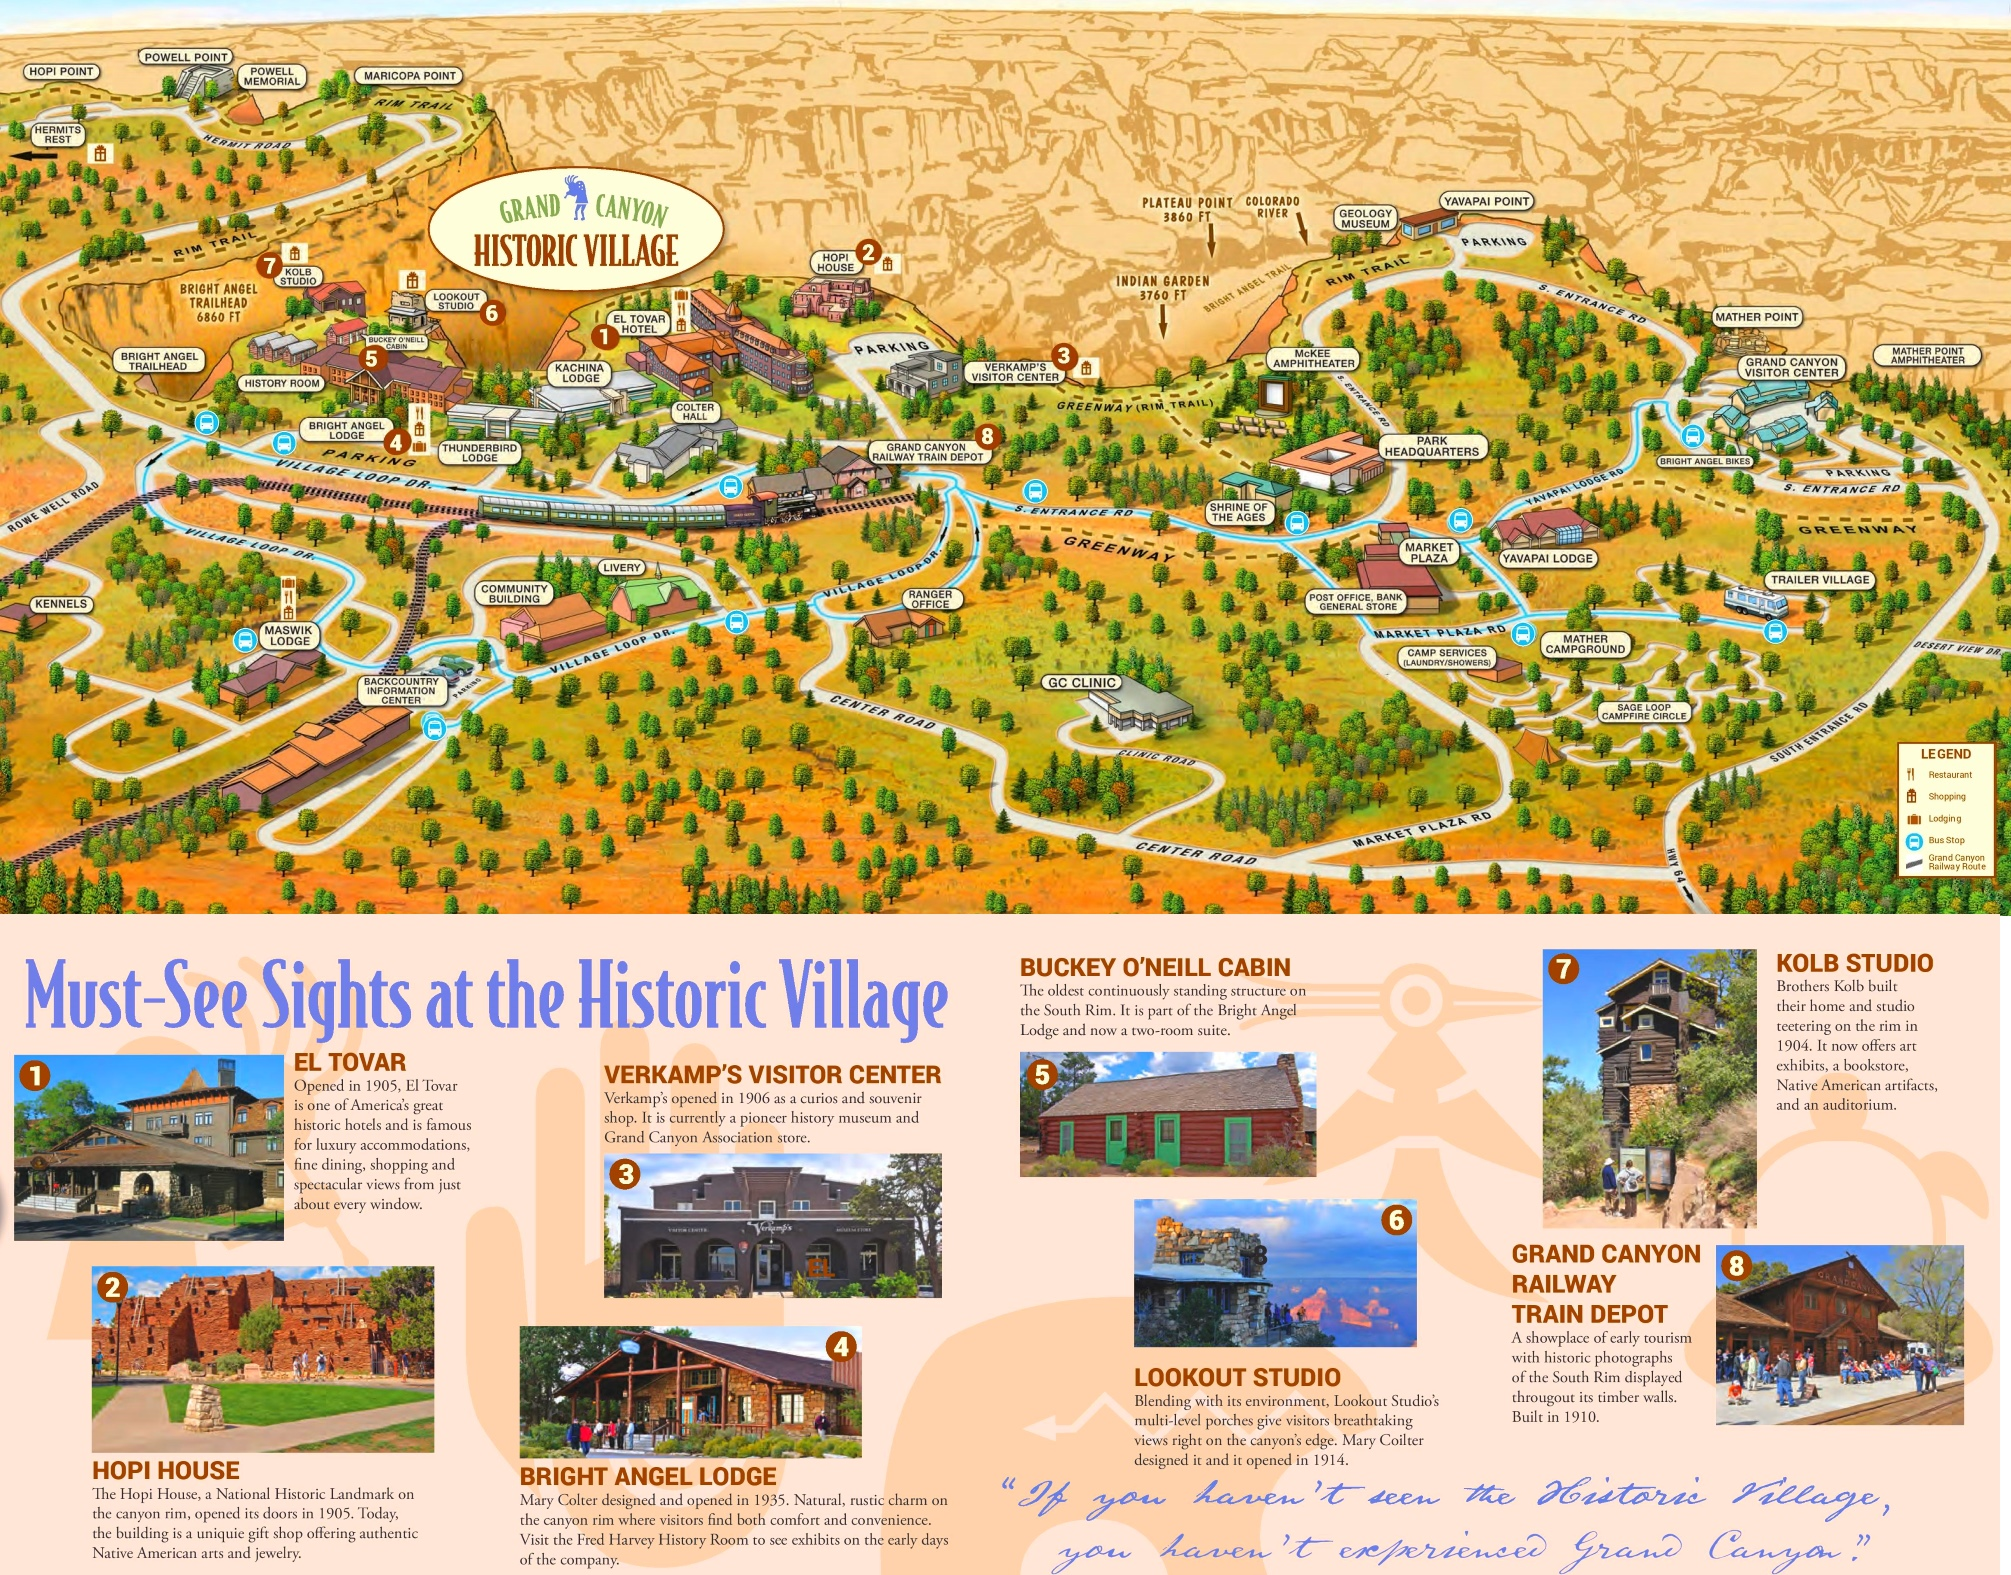 Grand Canyon Historic Village sightseeing map